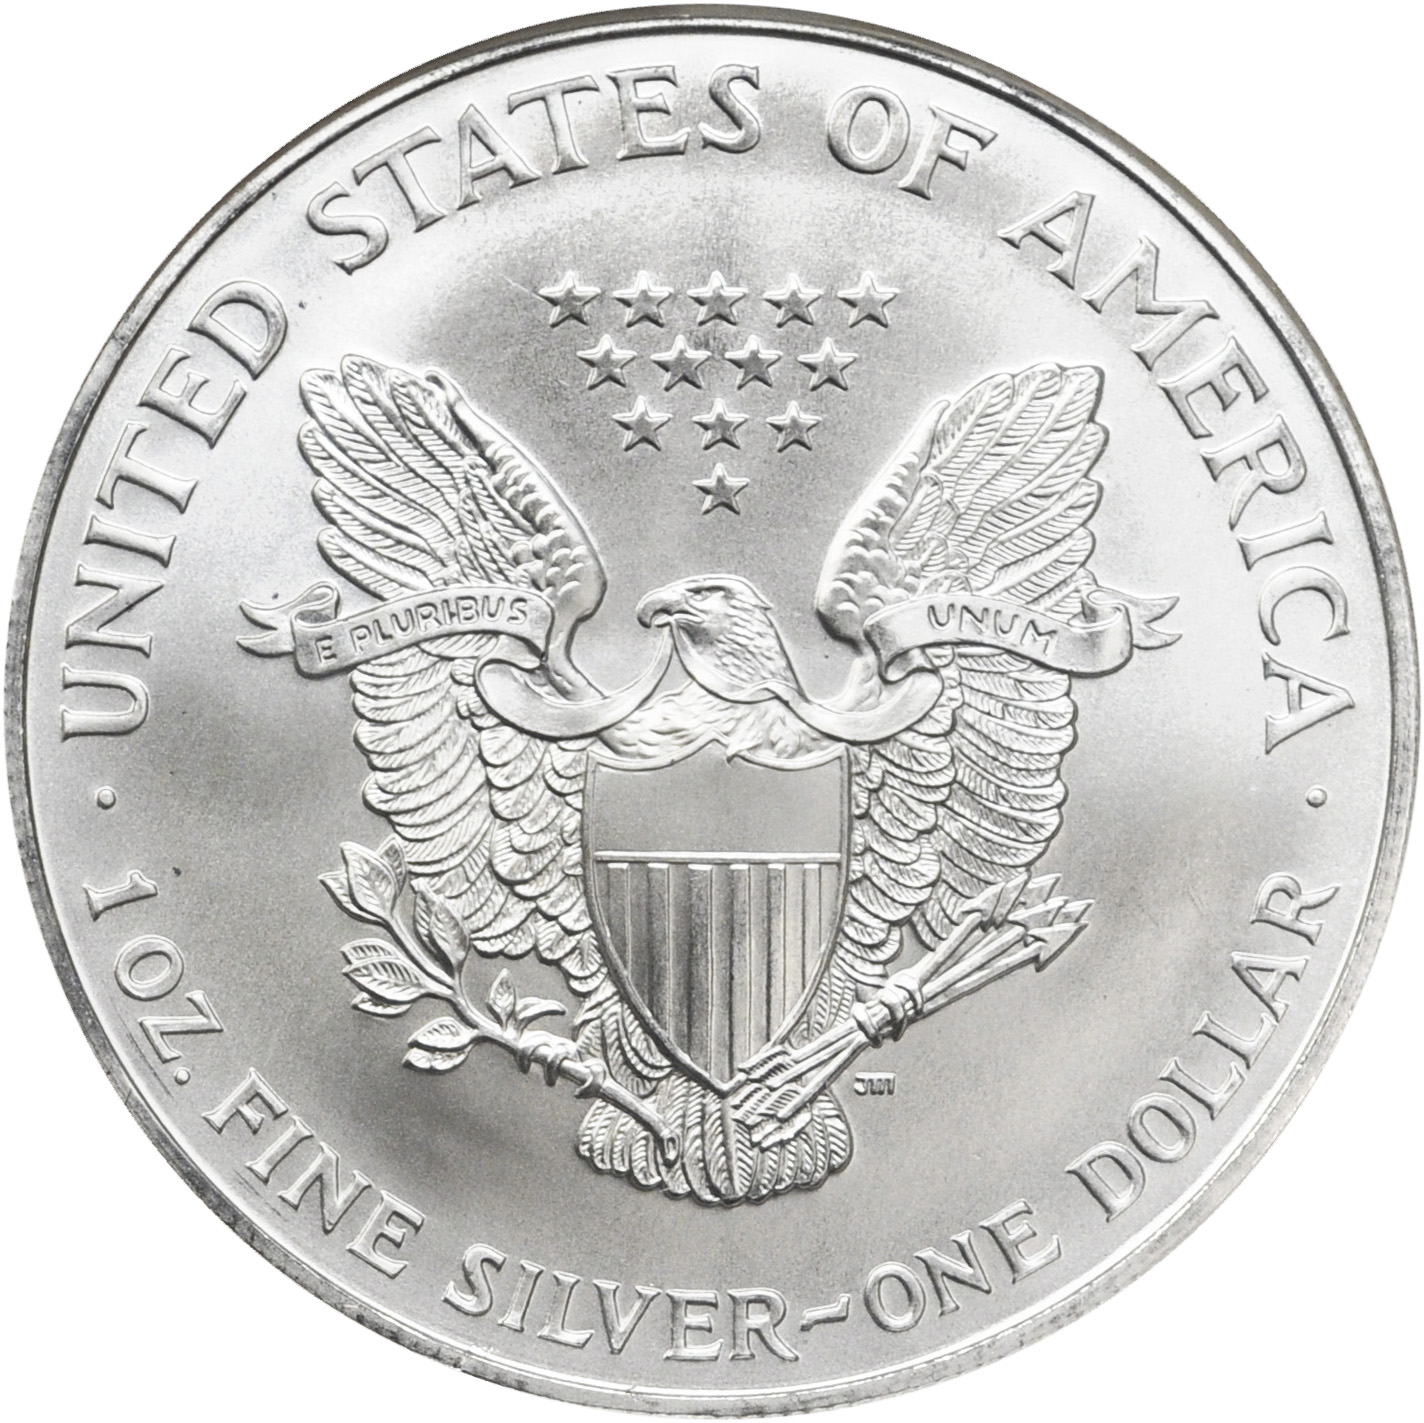 Value Of 1996 1 Silver Coin American Silver Eagle Coin